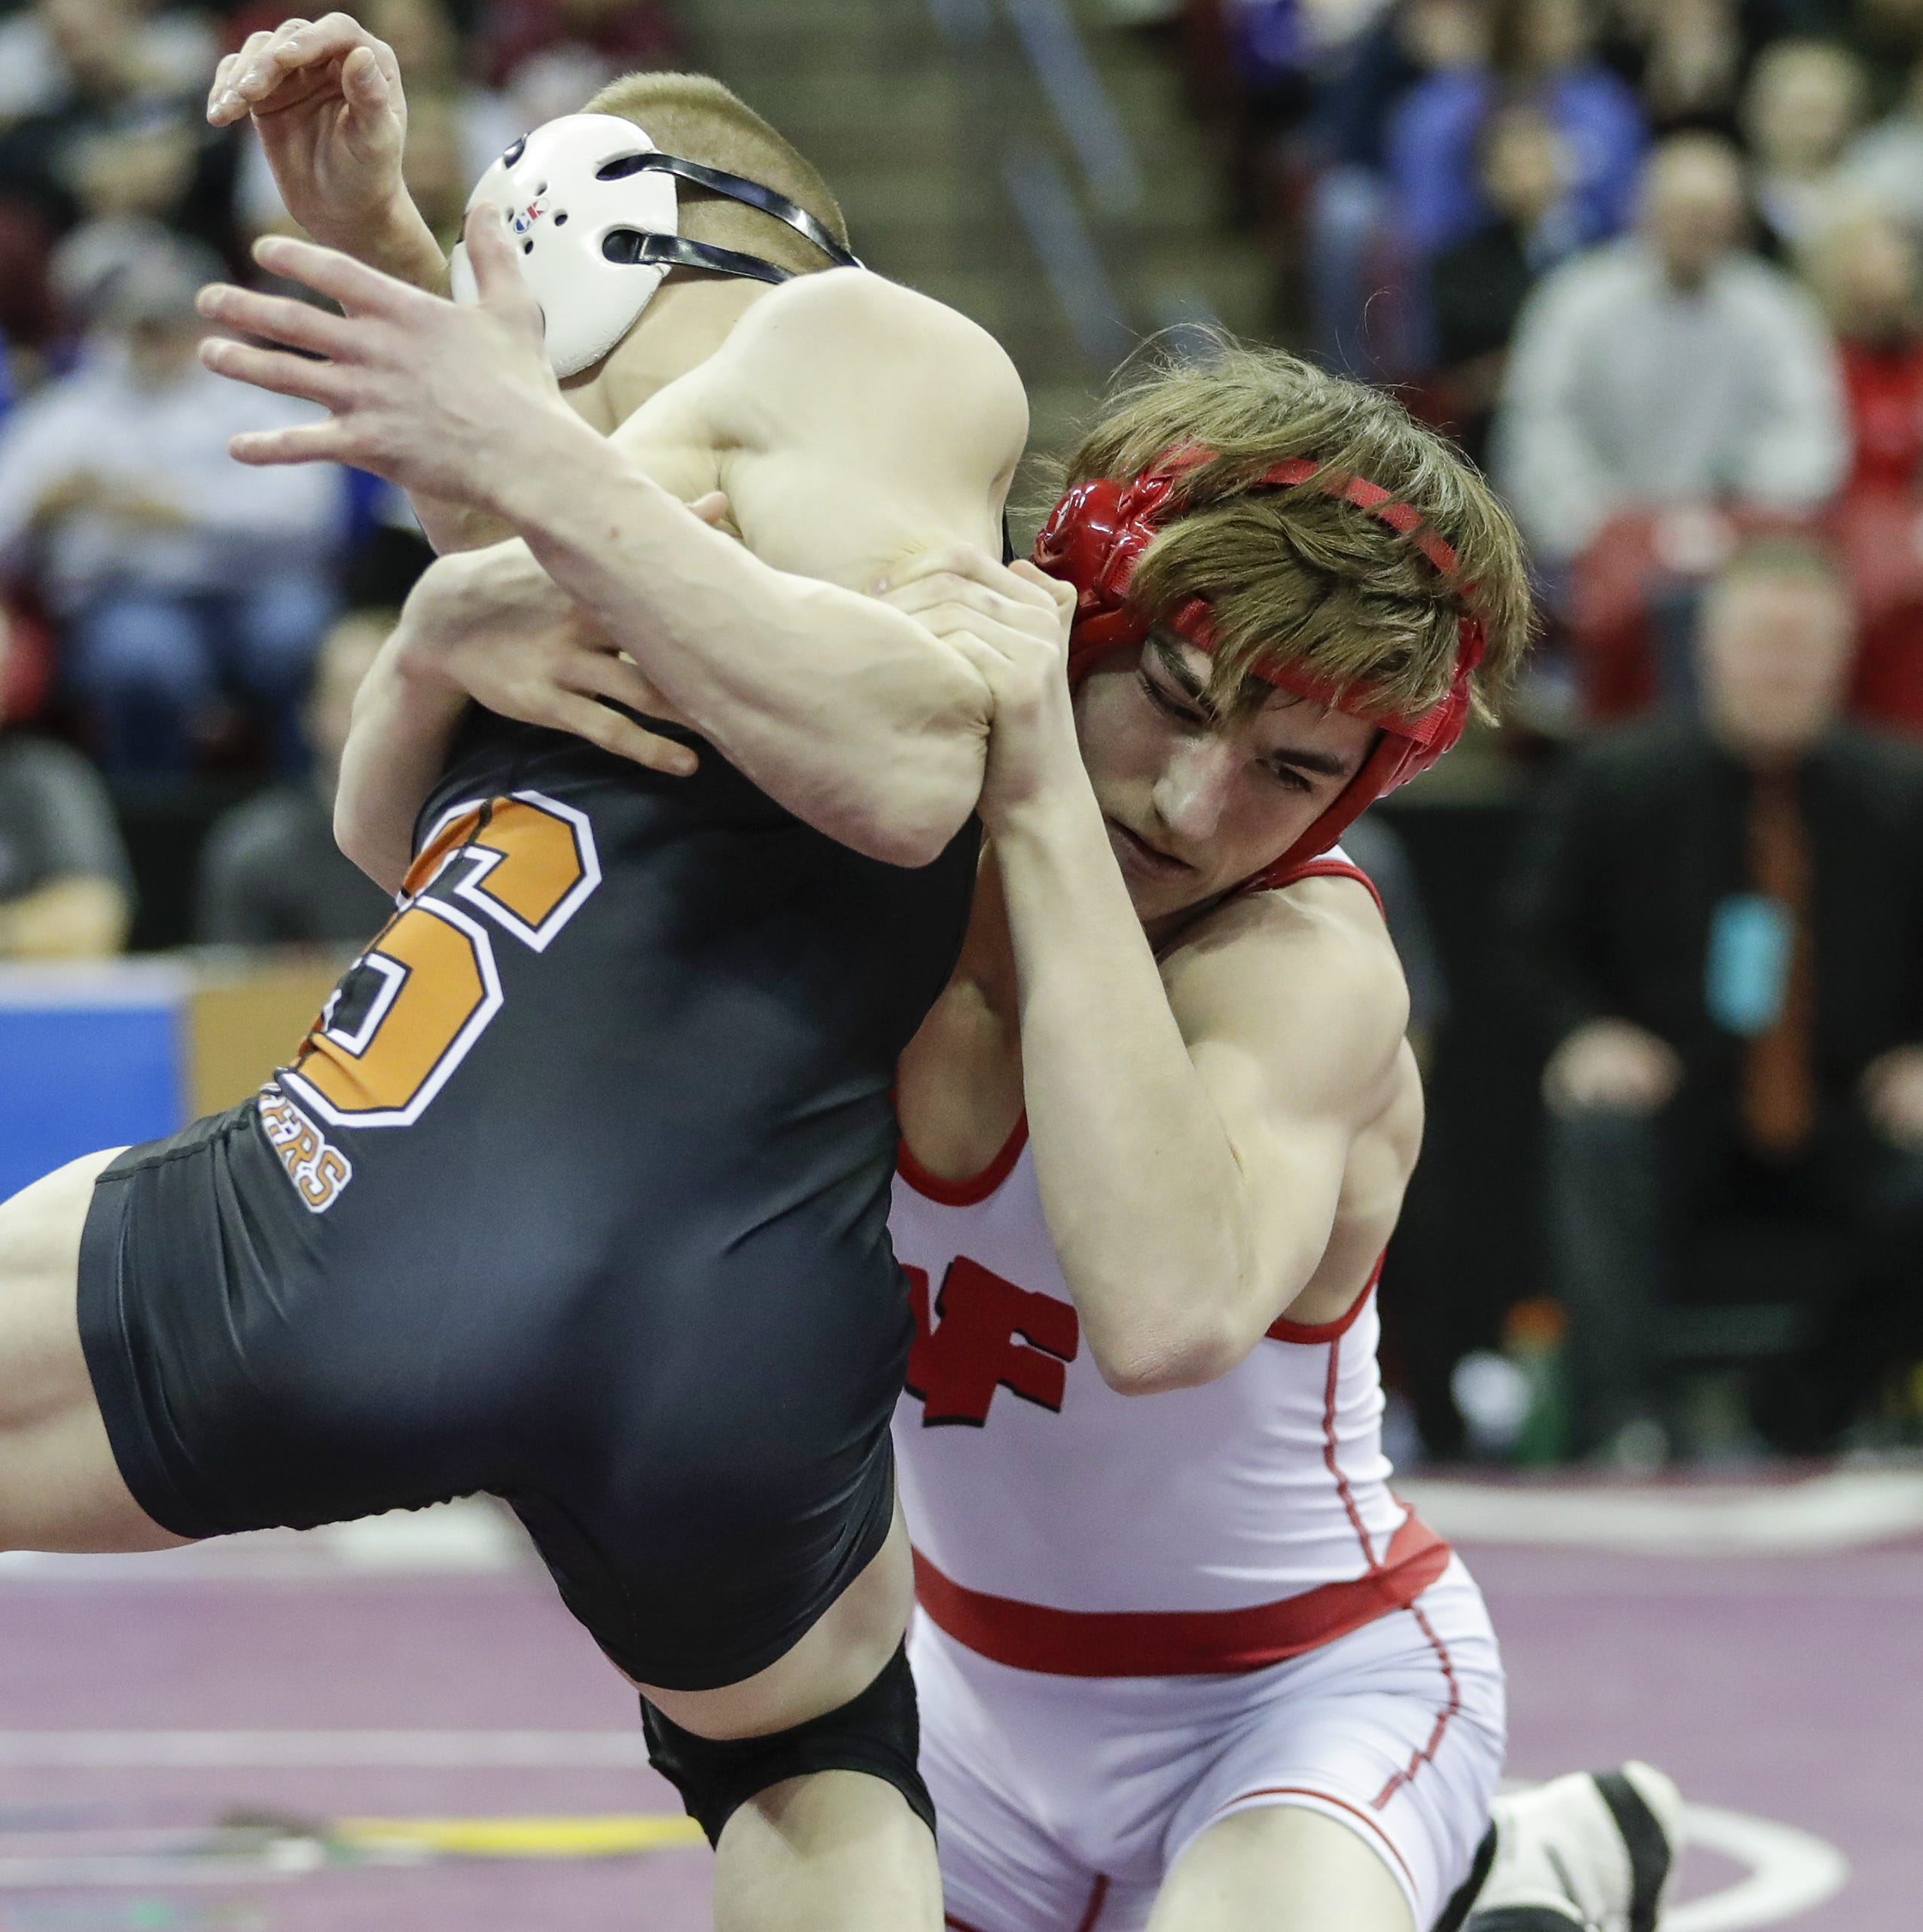 WIAA state wrestling: Fourth time a charm for Weyauwega-Fremont's Fischer